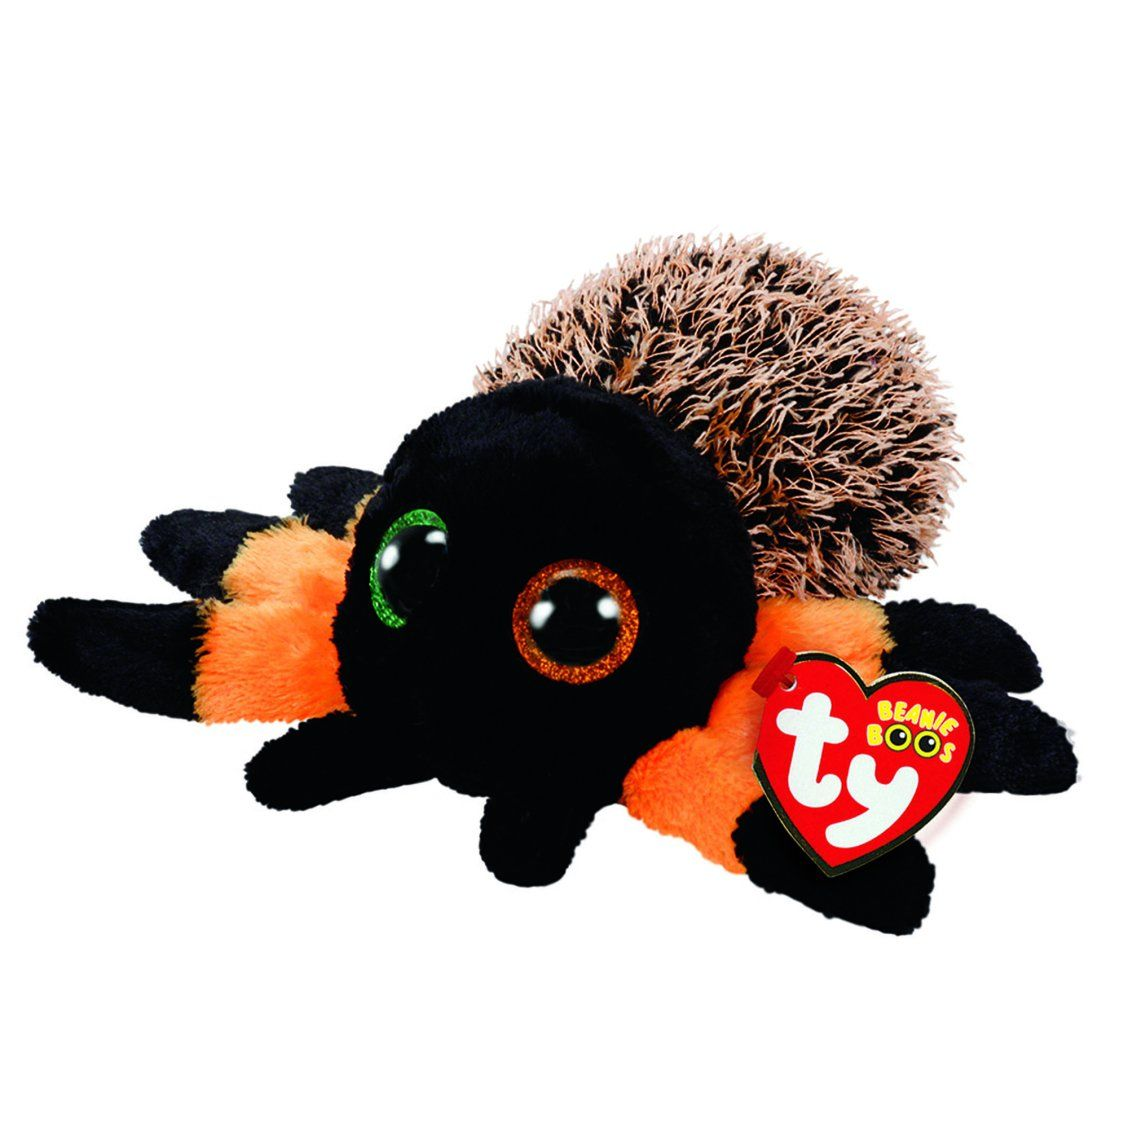 TY Beanie Boos Hairy the Spider Plush Toy. TY Beanie Boos Hairy the Spider Plush  Toy Halloween ... fa99d73eee40